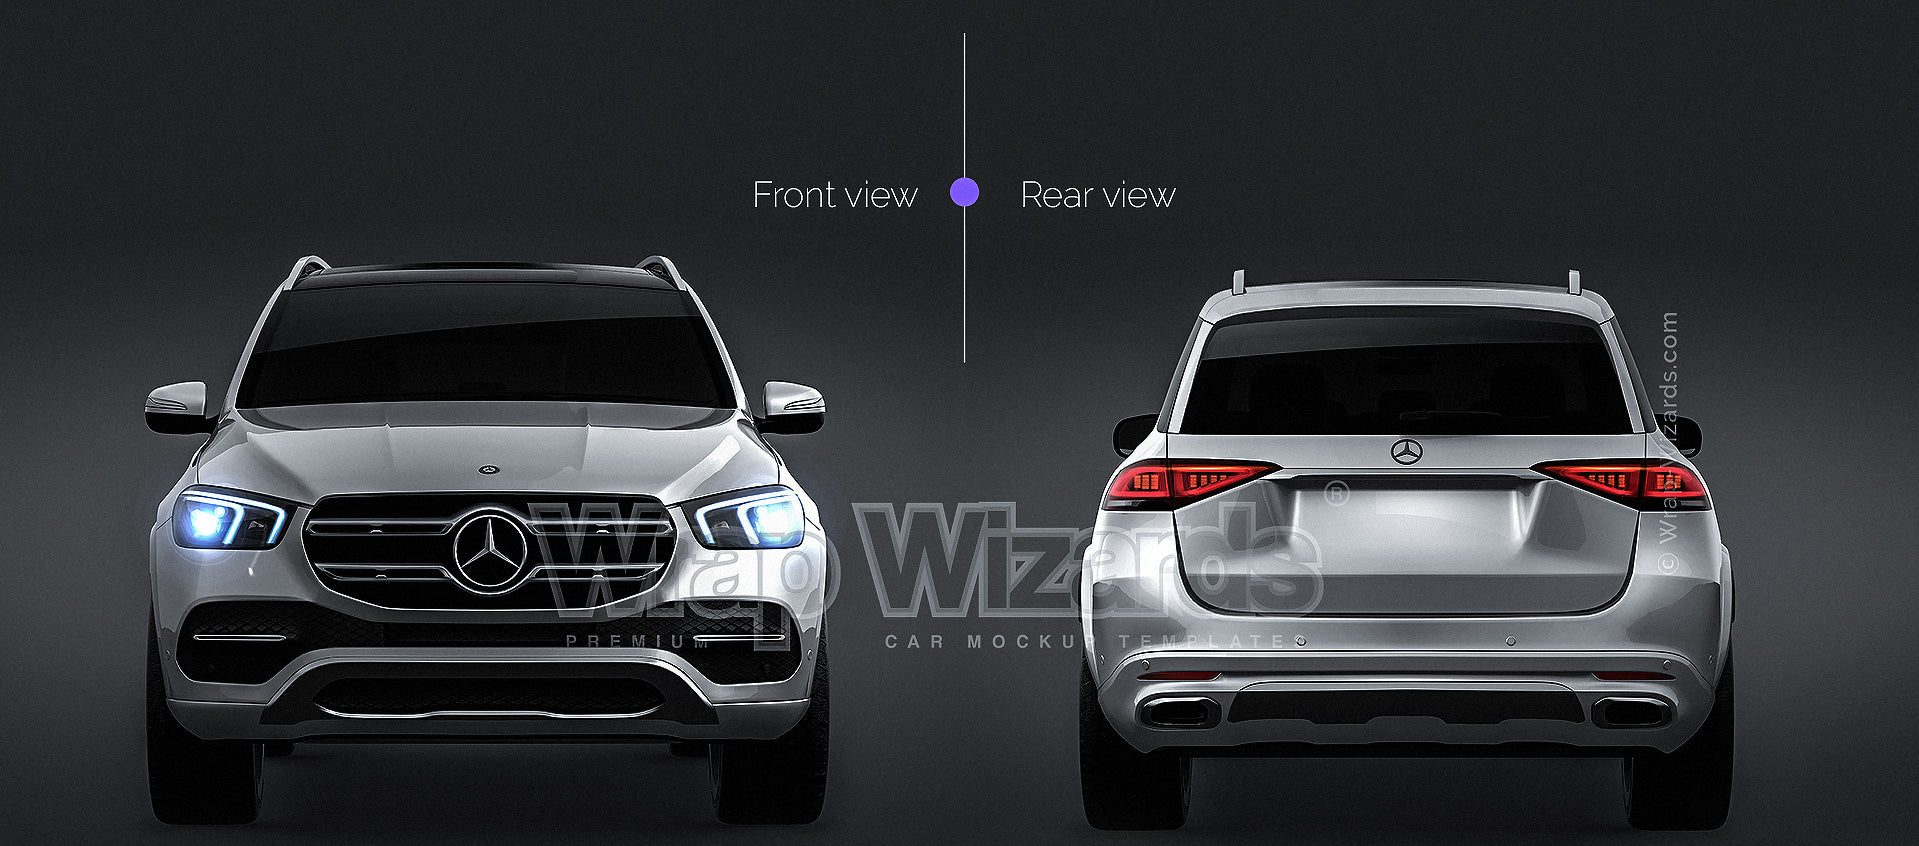 Mercedes Benz GLE 2020 all sides Car Mockup Template.psd